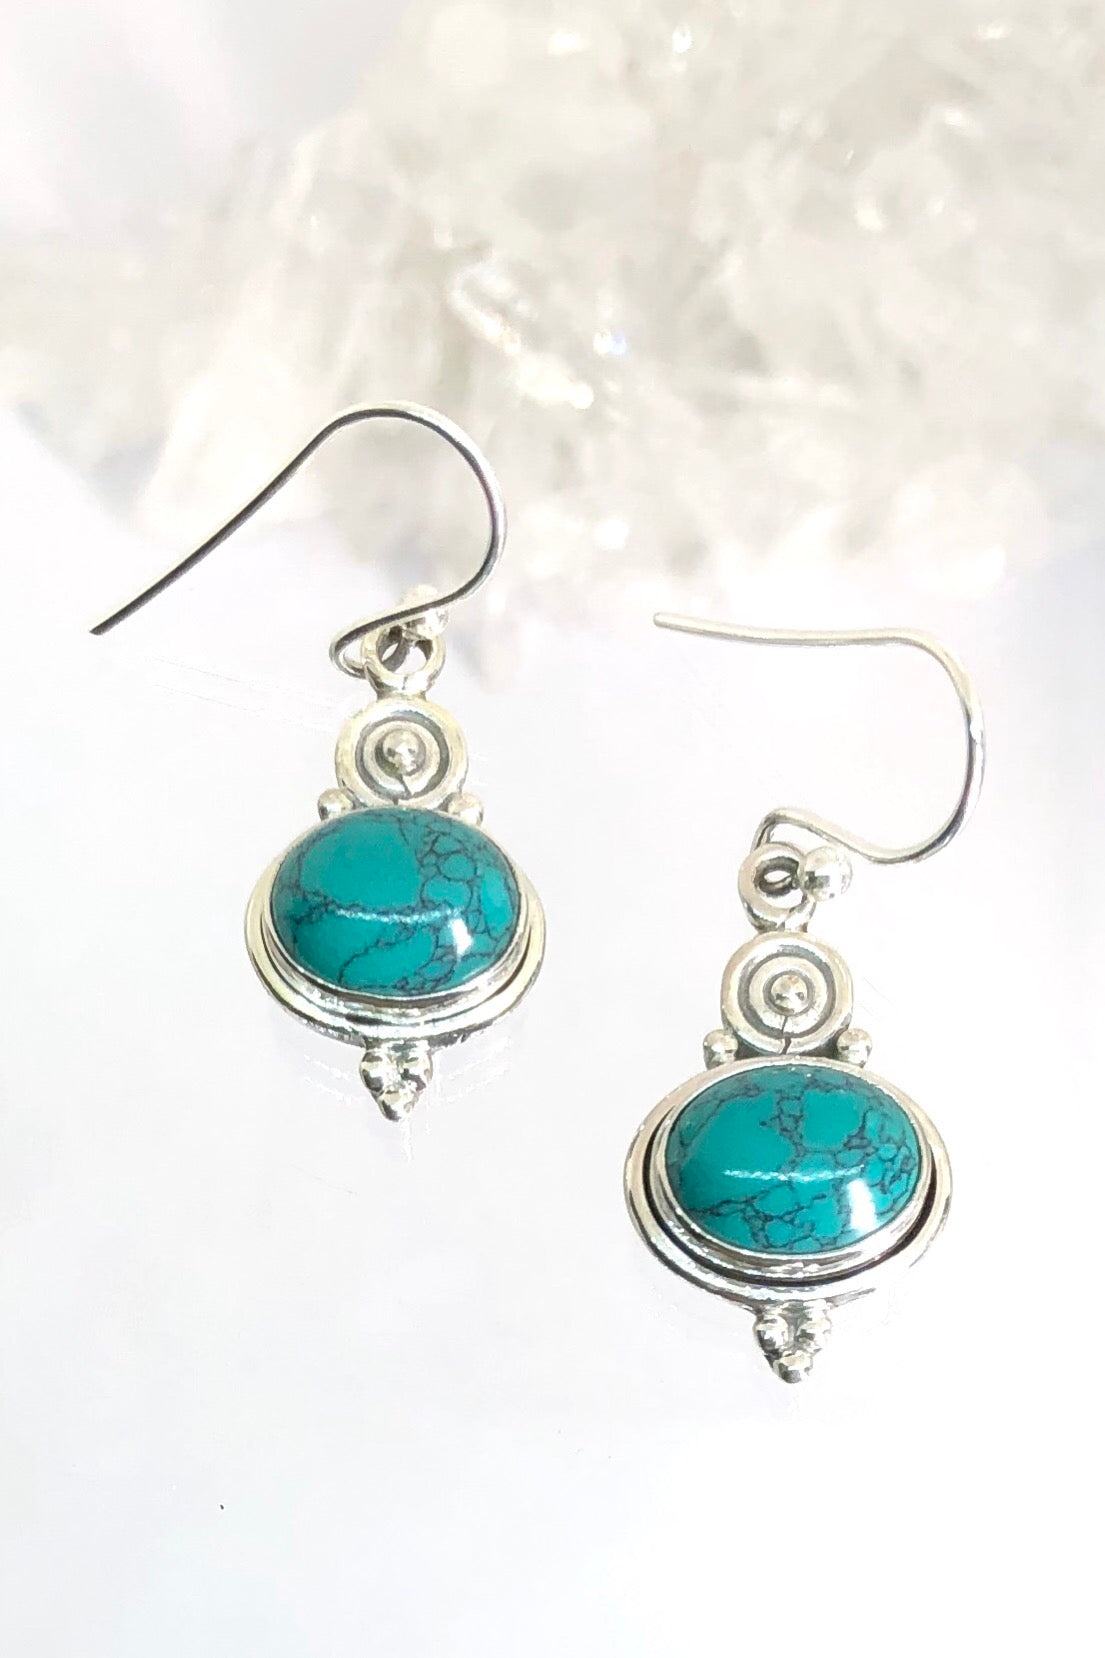 These drop earrings feature a deep-hued gemstone beneath silver swirls.